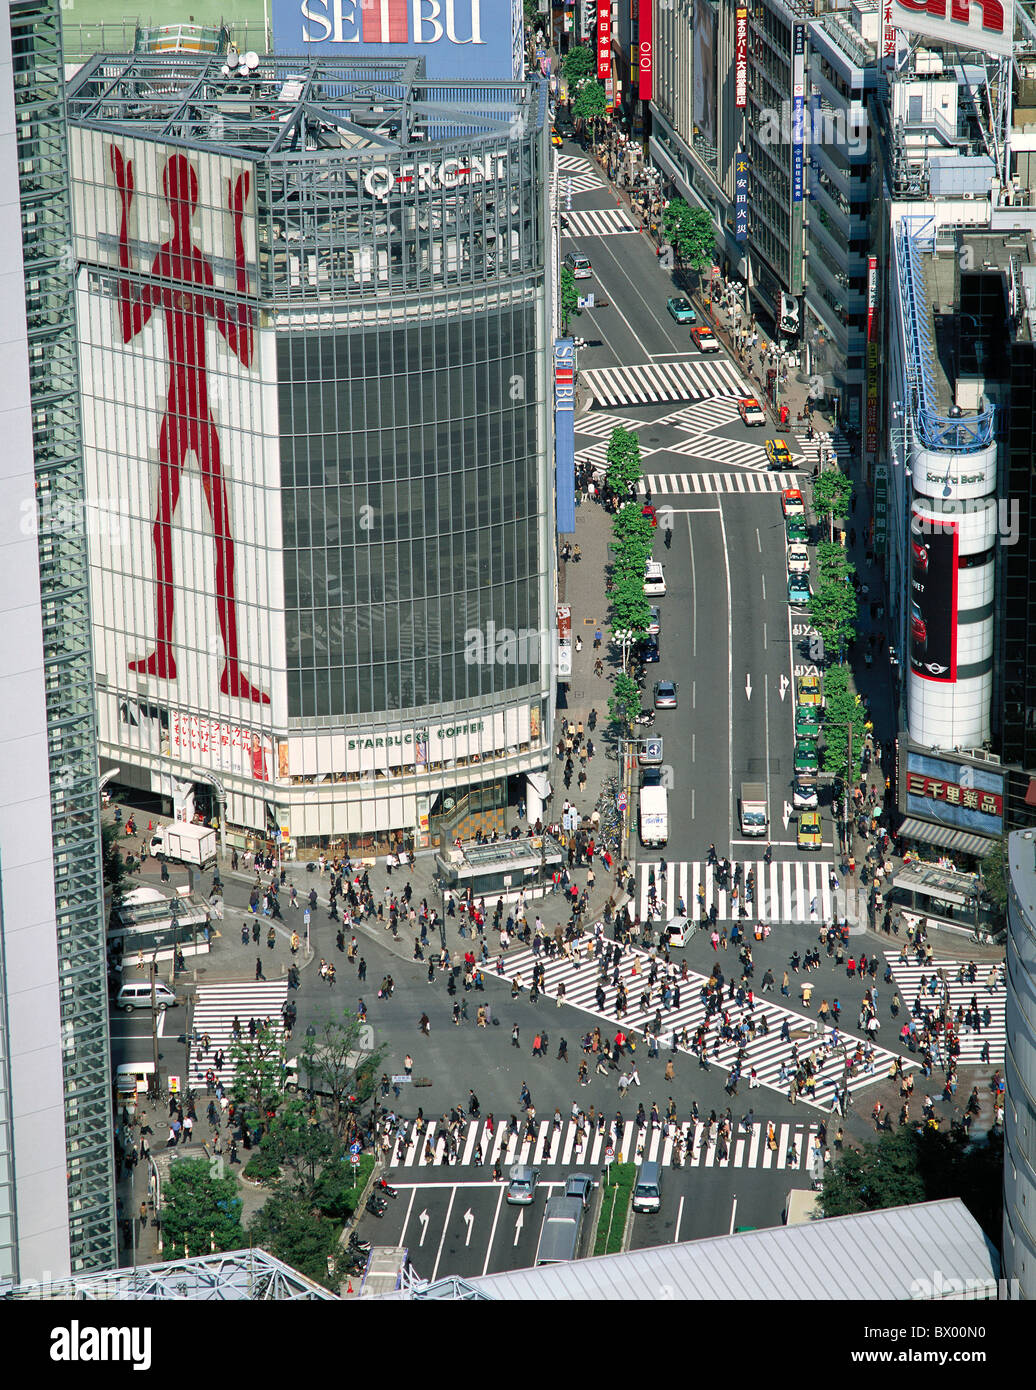 pedestrian's stripes Japan Asia crossroad intersection Shibuya District Tokyo overview - Stock Image